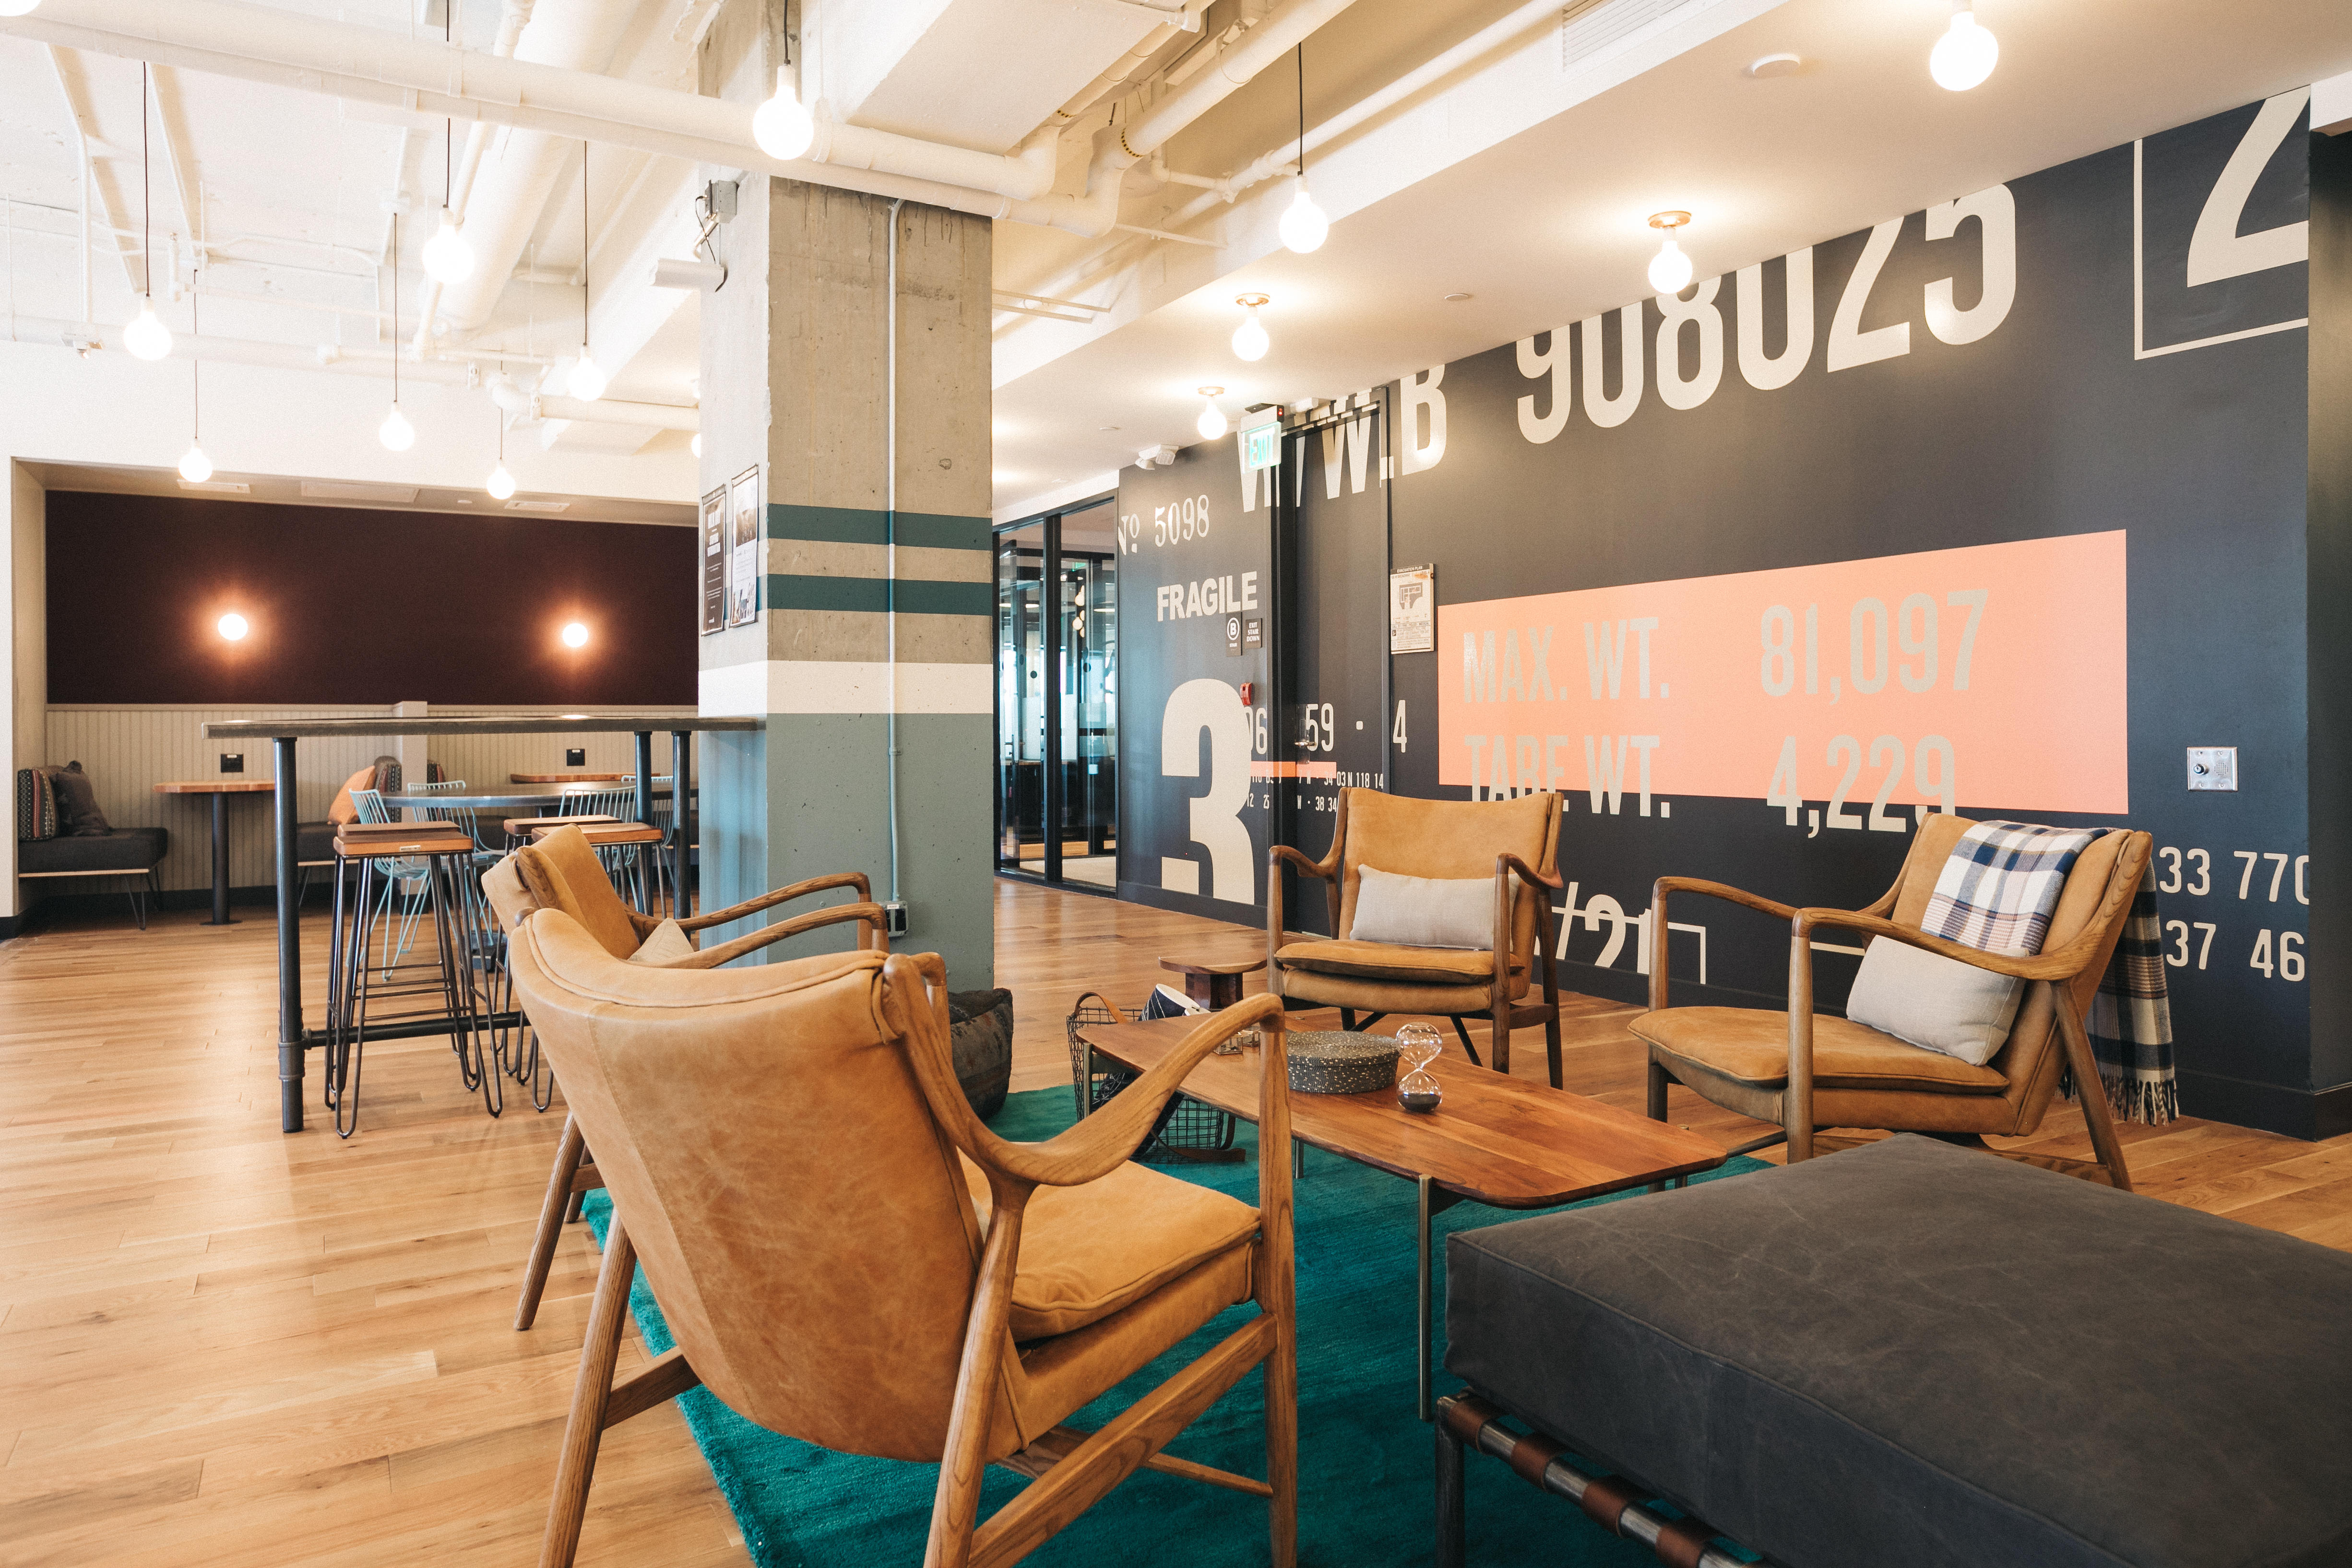 WeWork The Hubb image 6